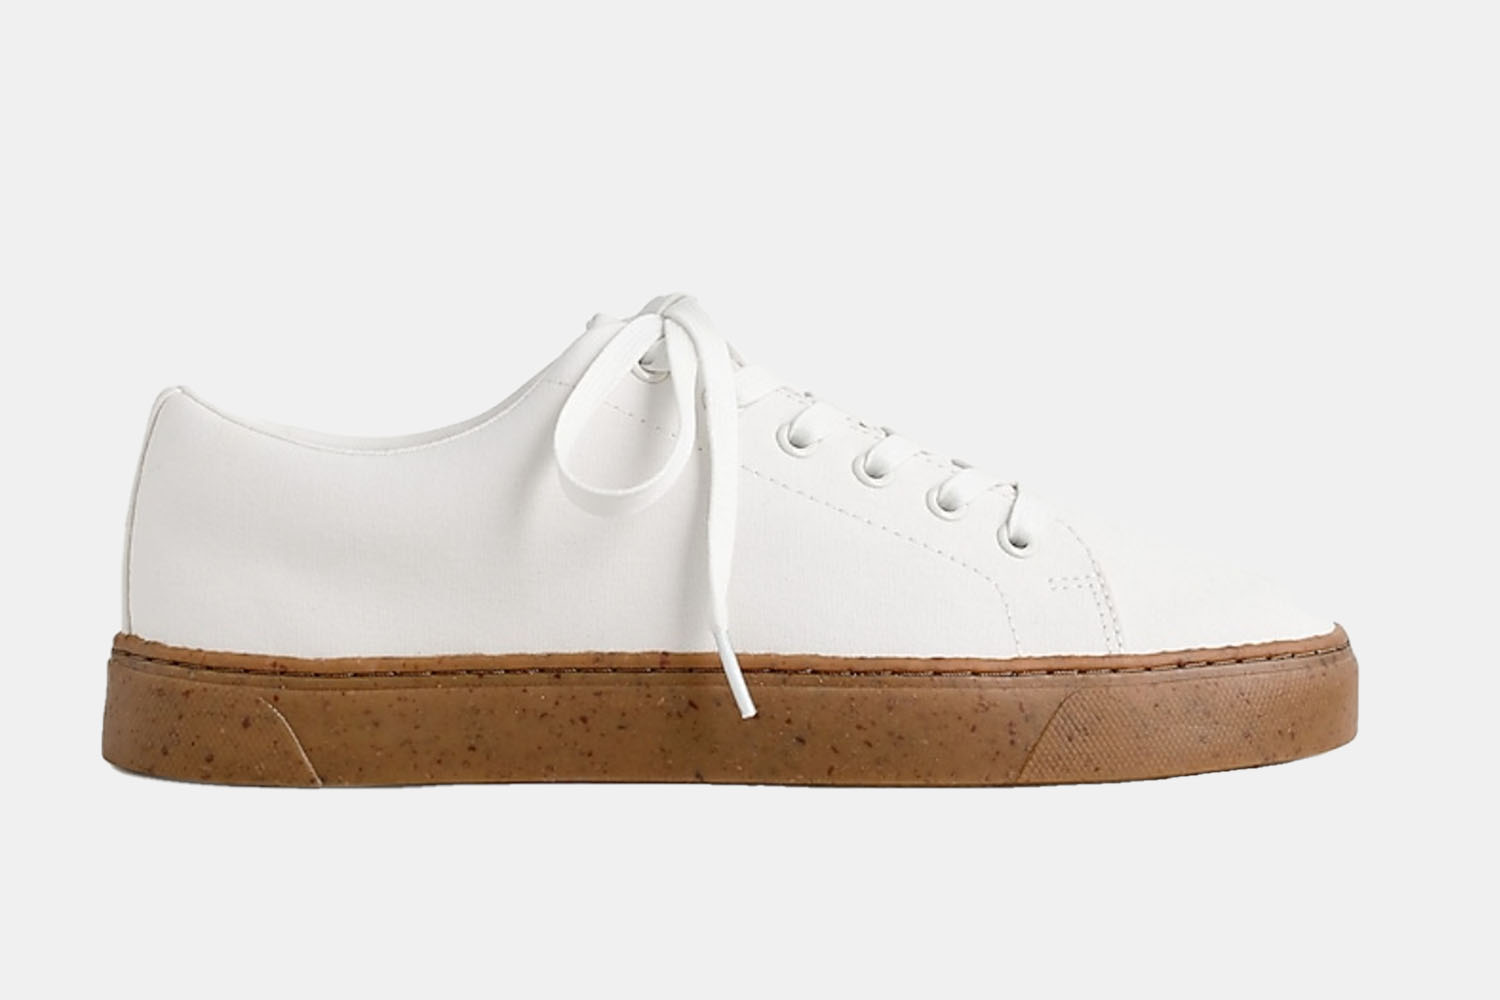 A very white sneaker with a gum sole.